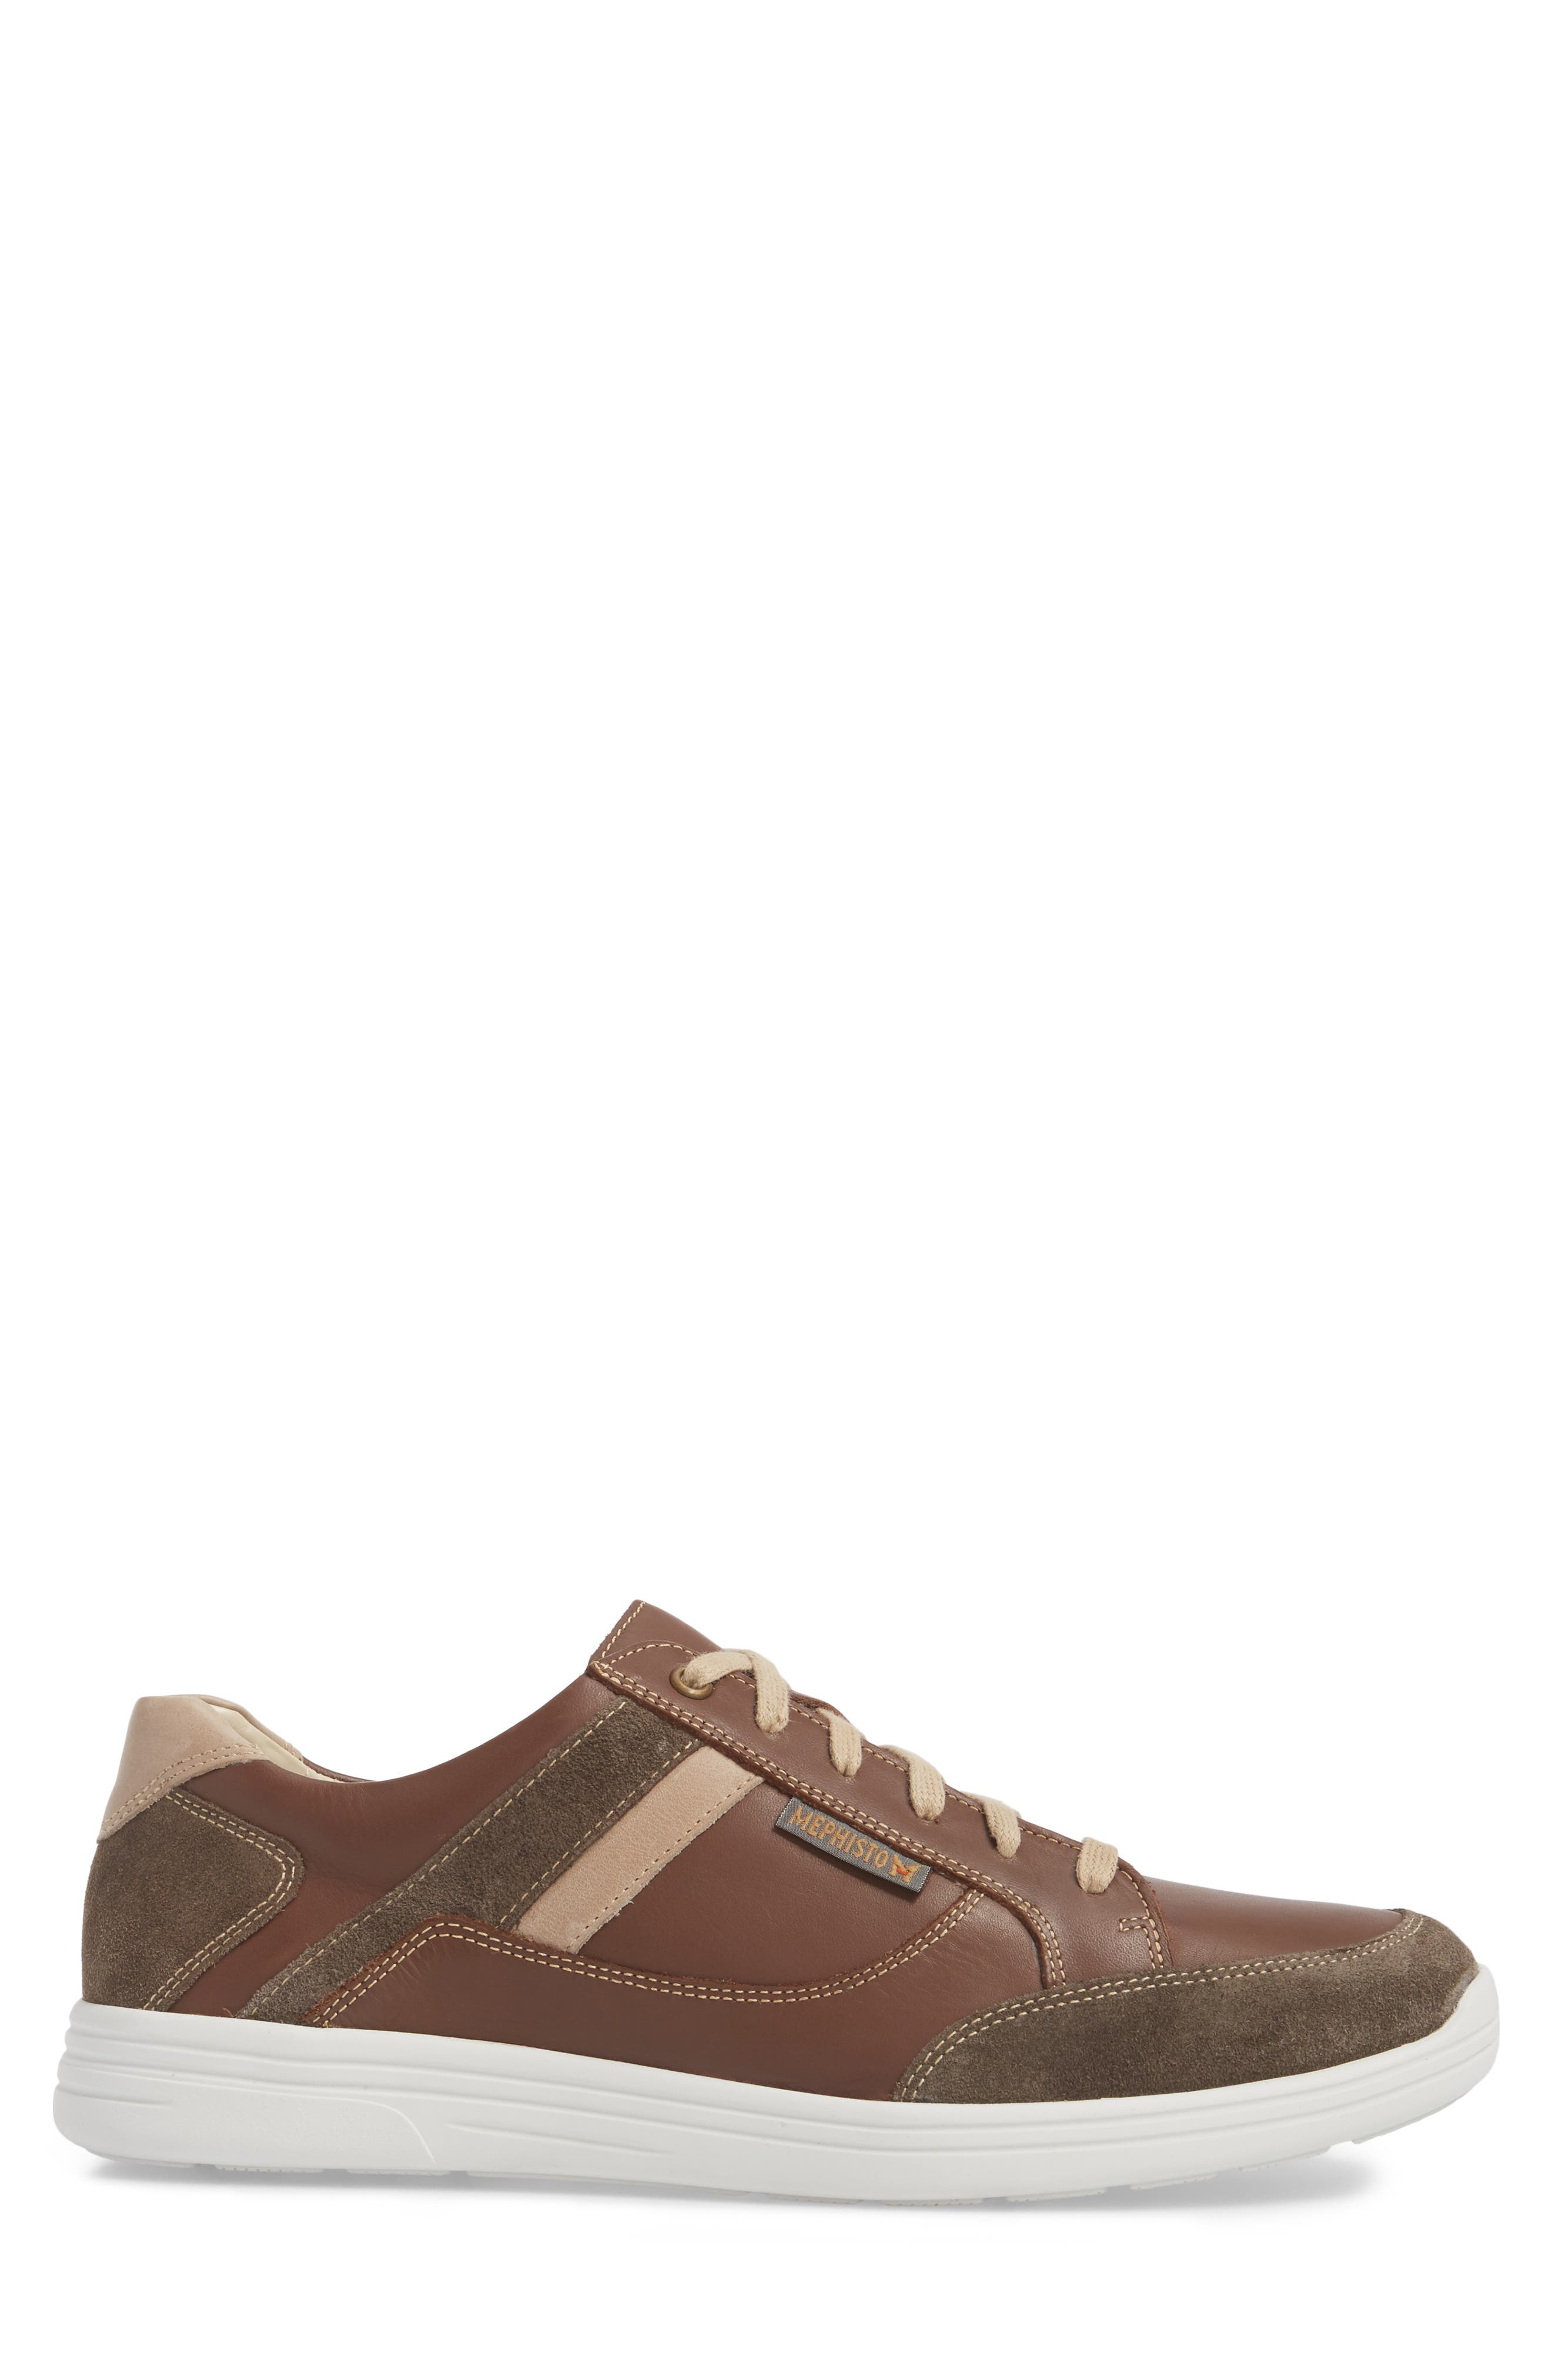 'Frank GoWing' Sneaker,                             Alternate thumbnail 3, color,                             Dark Taupe